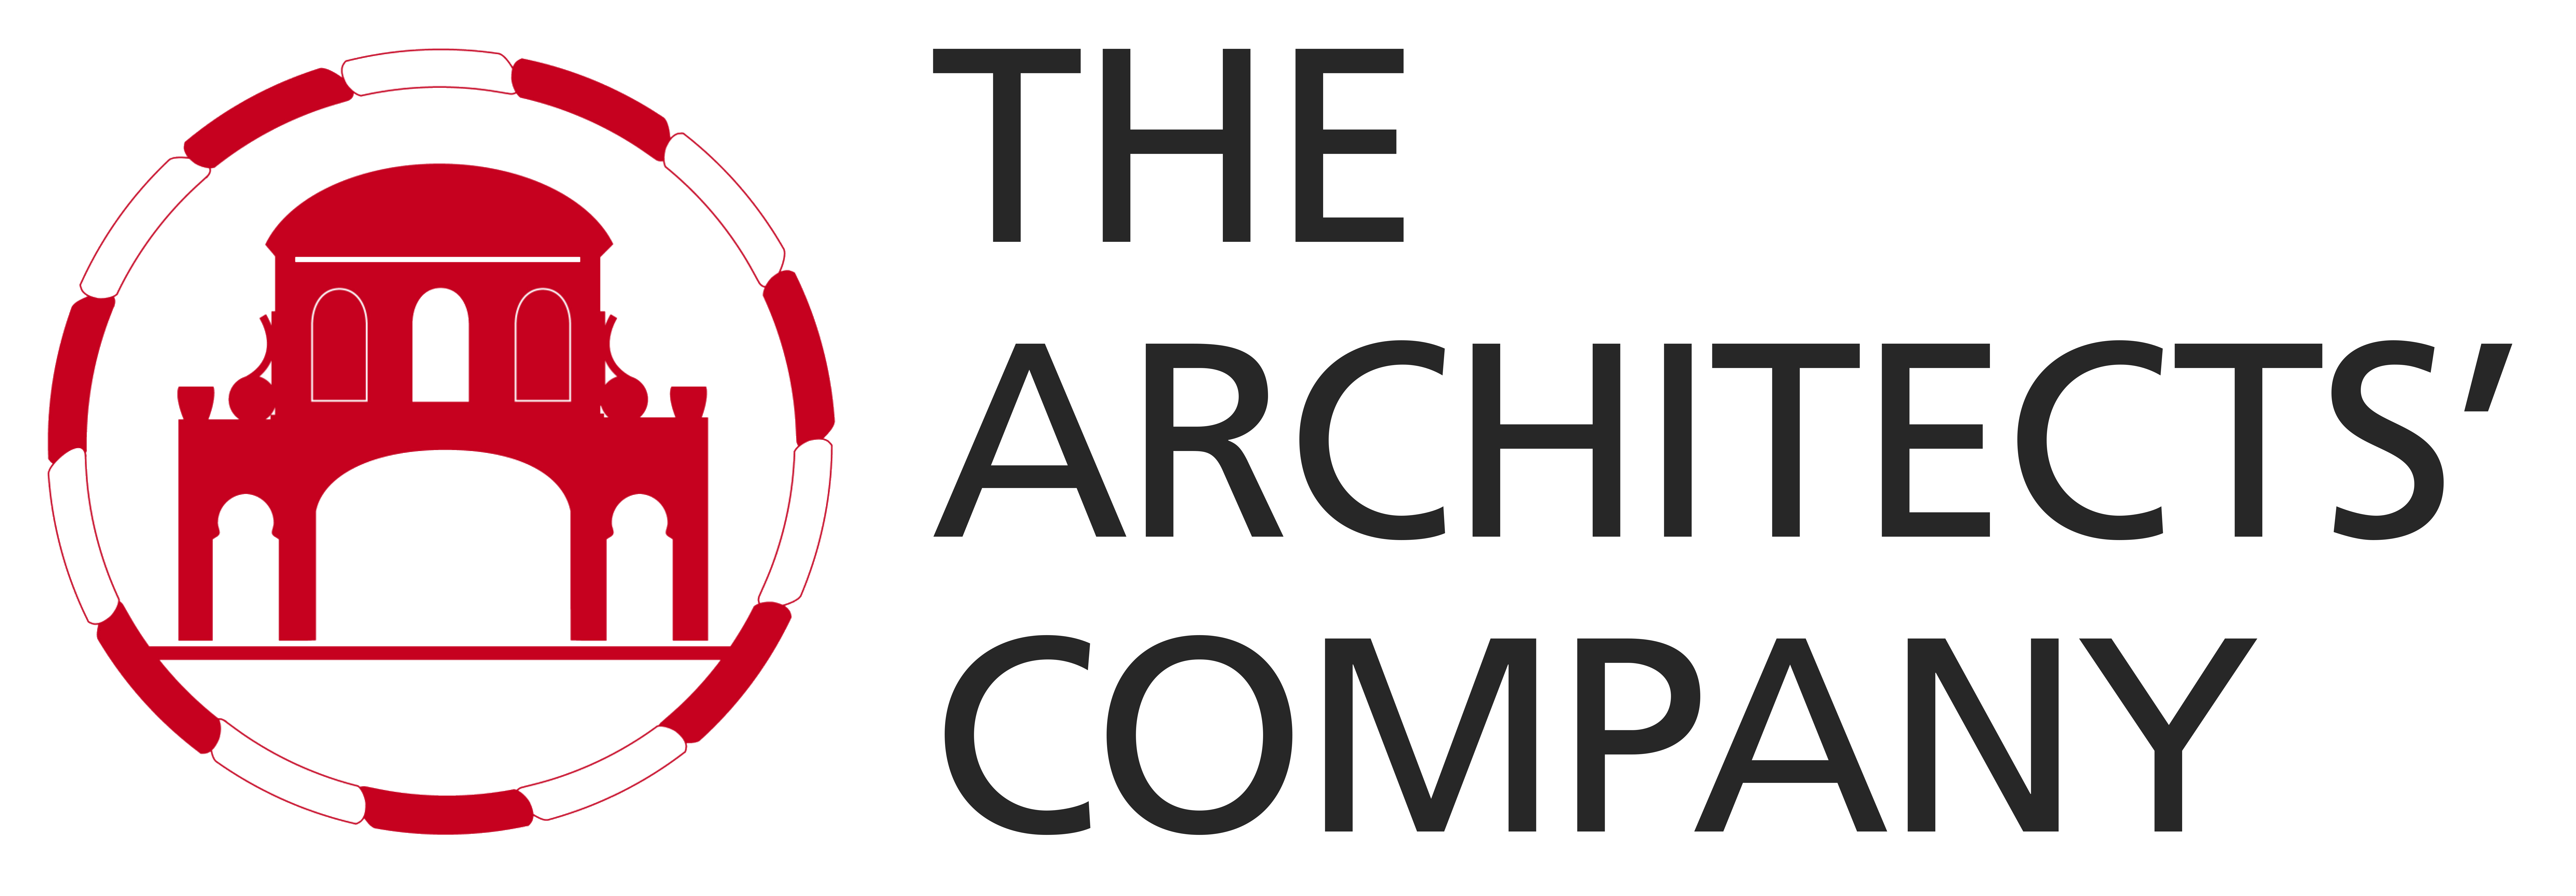 Architects Company